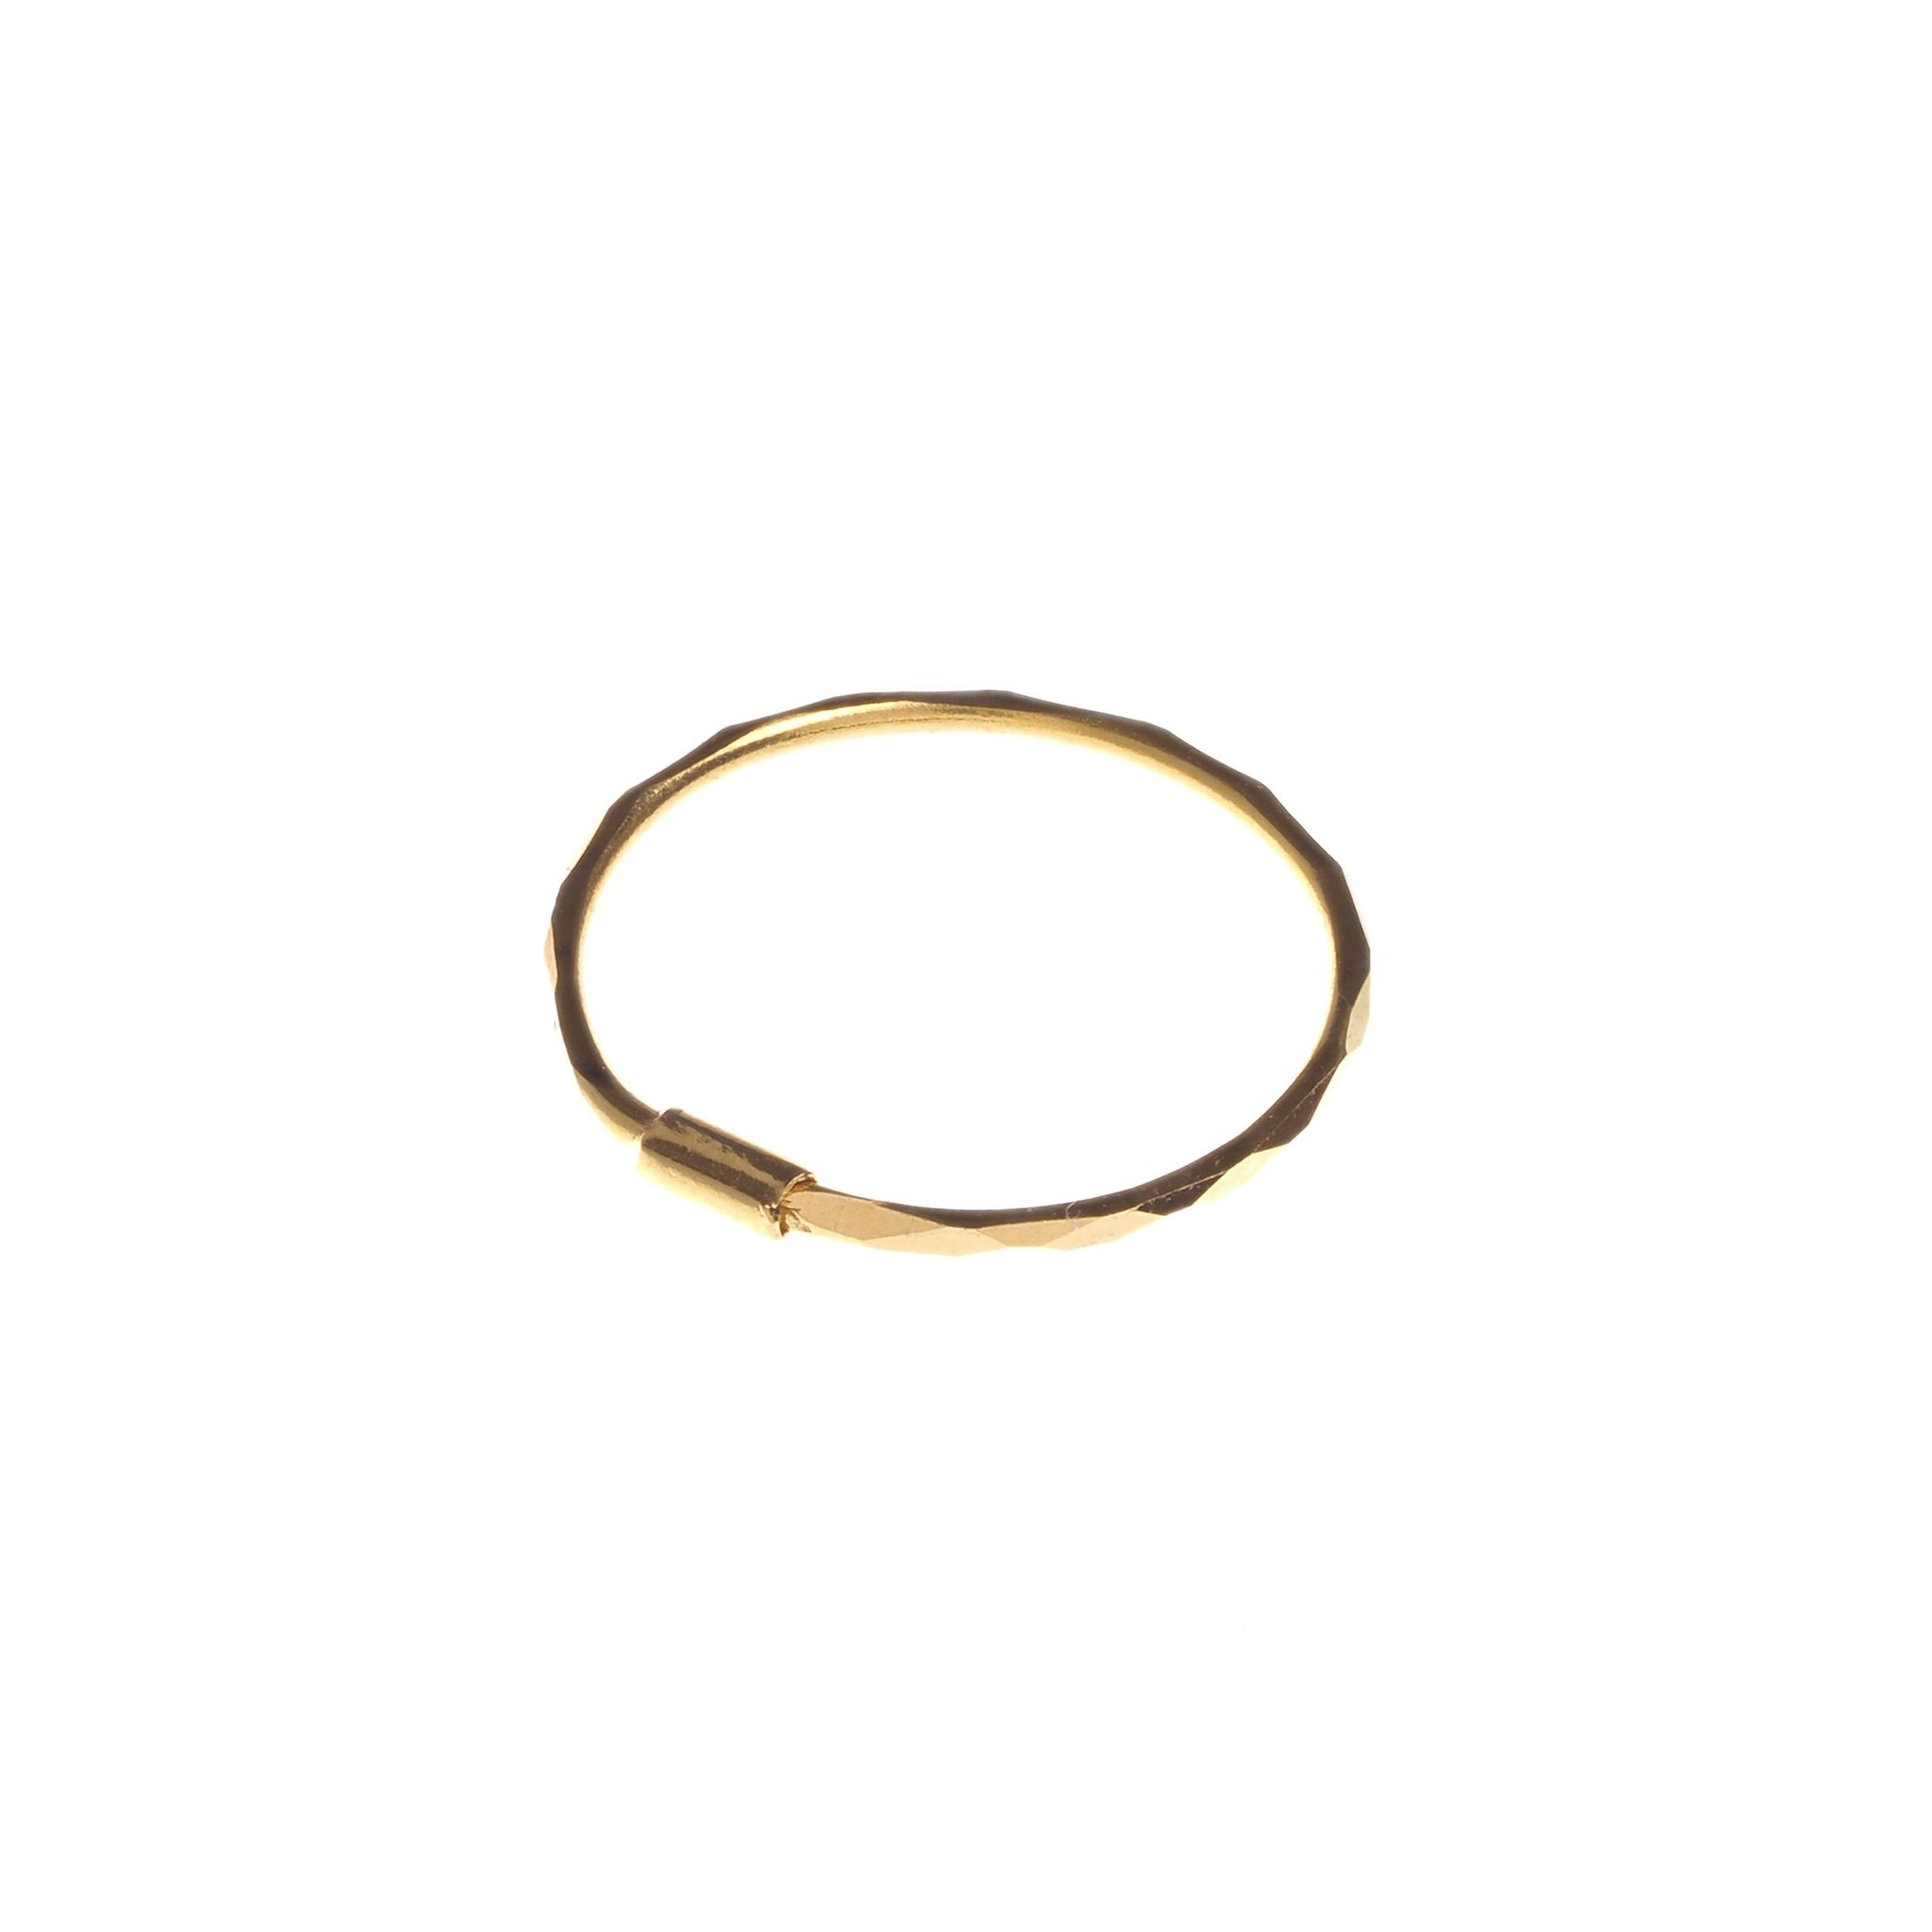 18ct Gold Nose Ring (NR-4659)